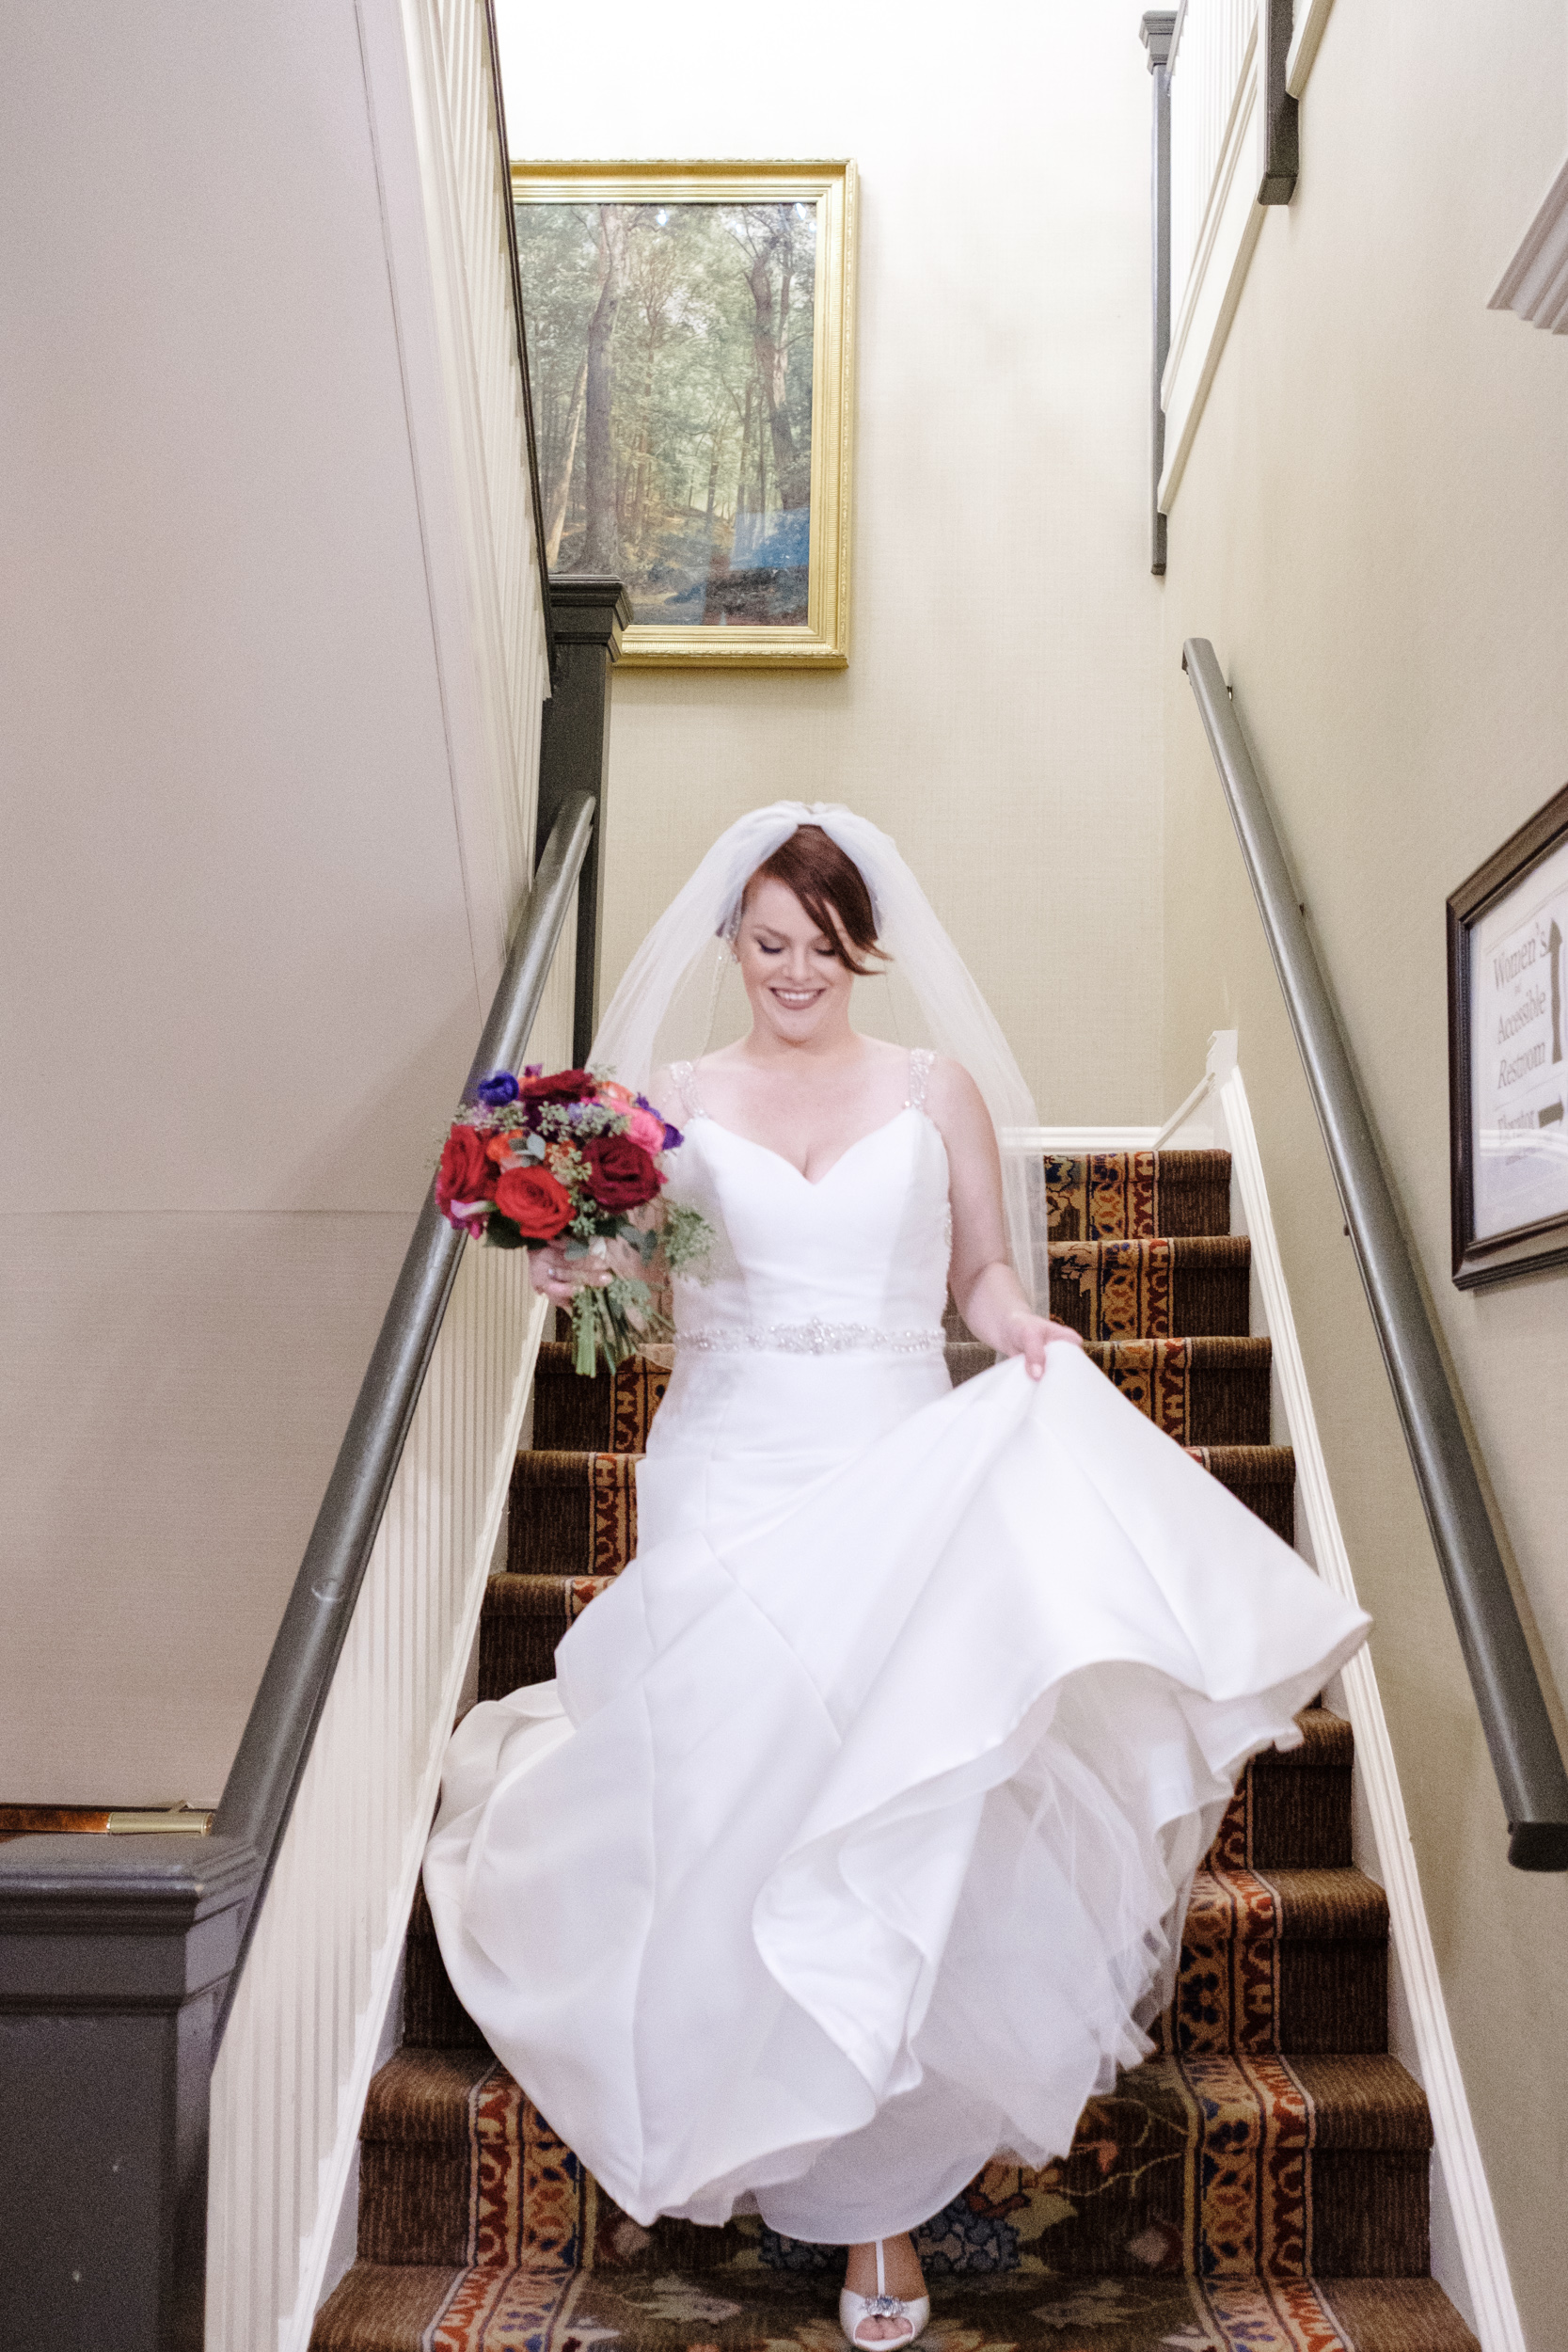 Bride walking down stairs to her wedding at cog hill